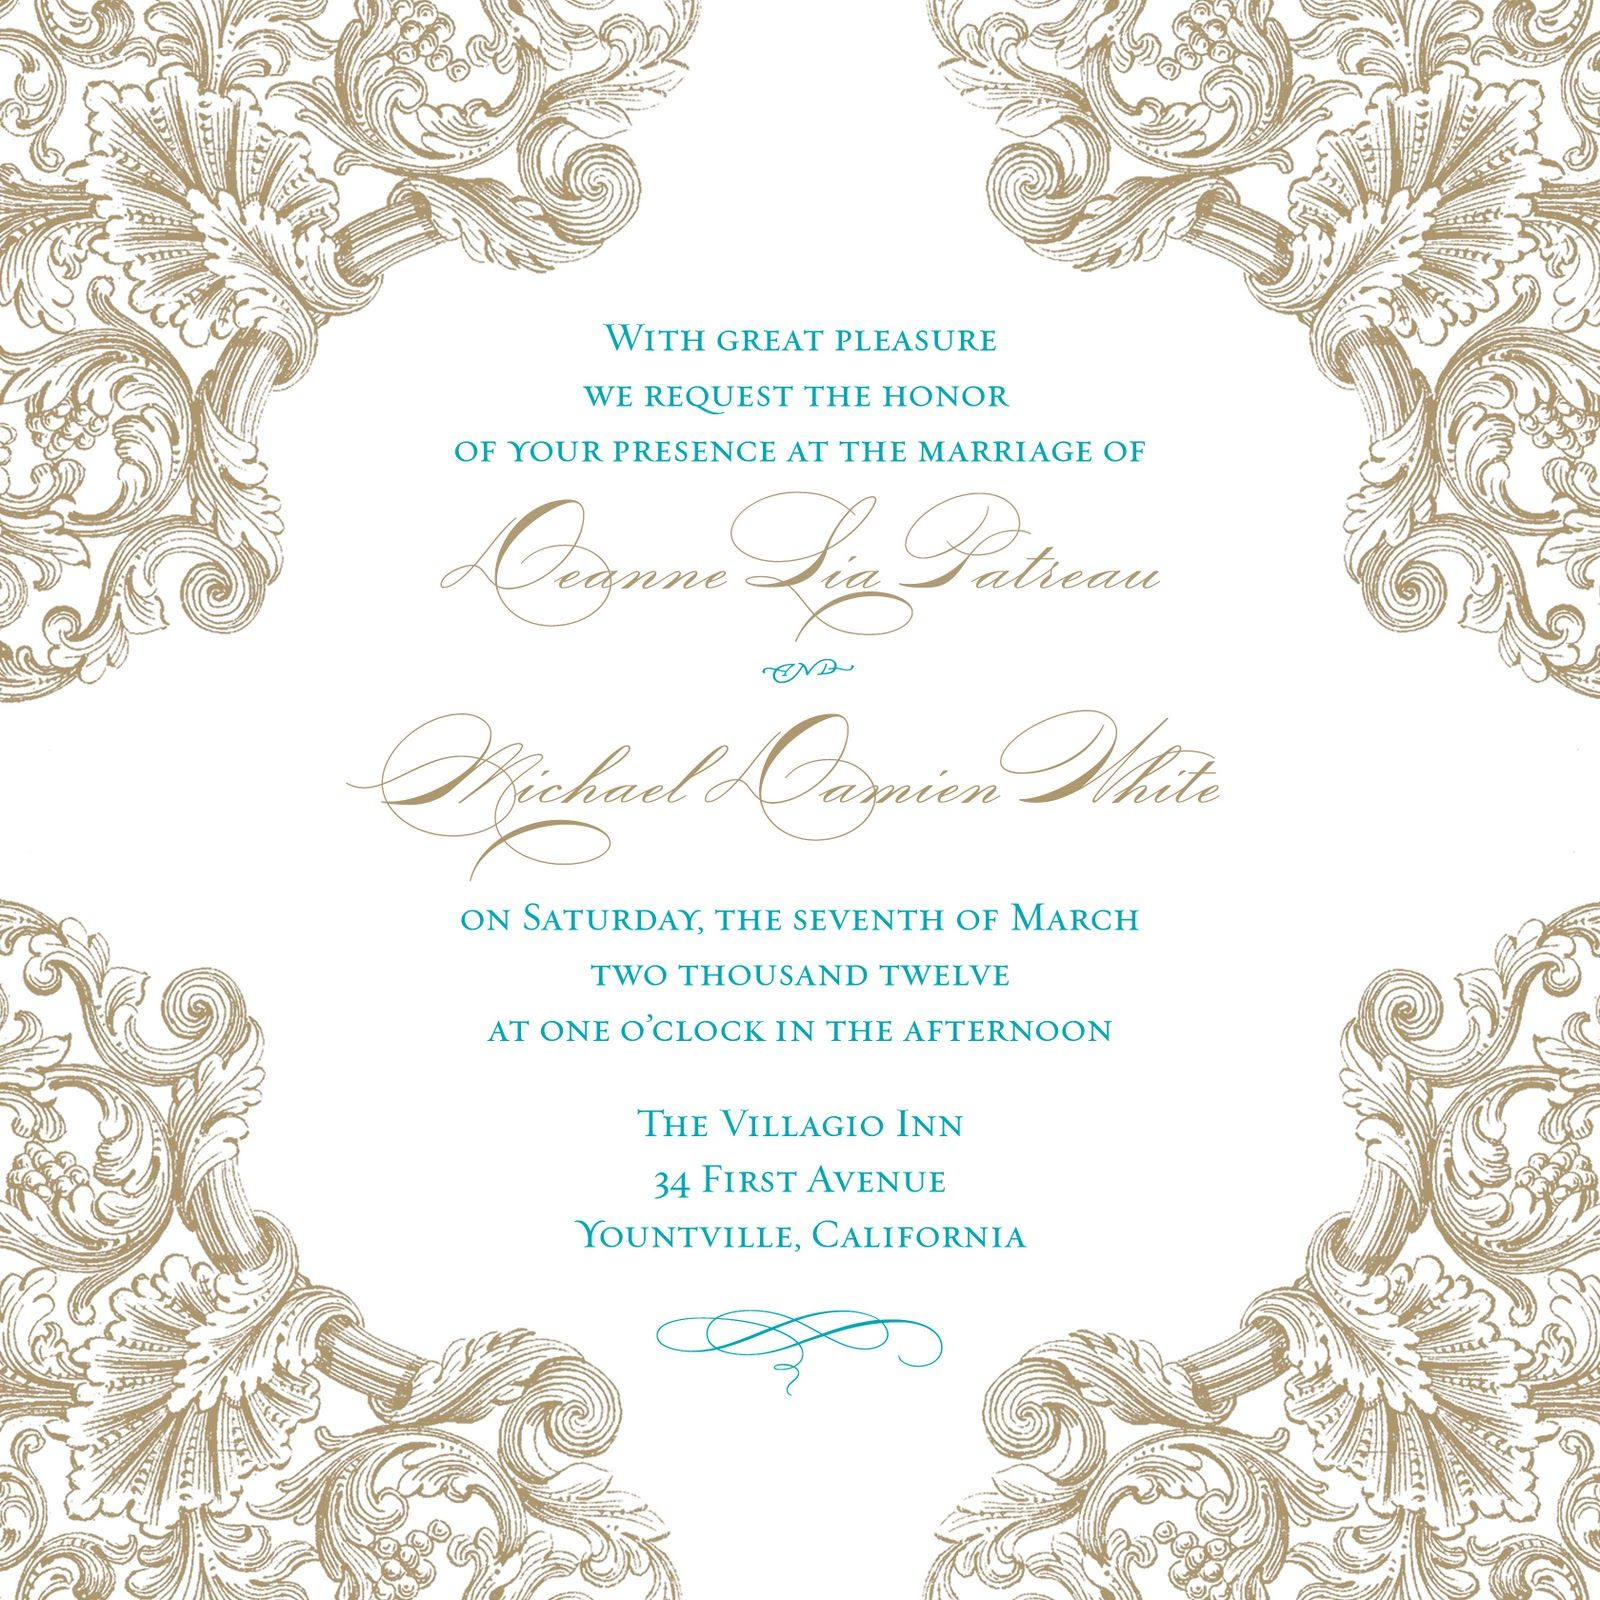 1de2872b906265e6323e23b19fca9081 collection of thousands of free web invitation template from all,Blank Wedding Invitation Paper